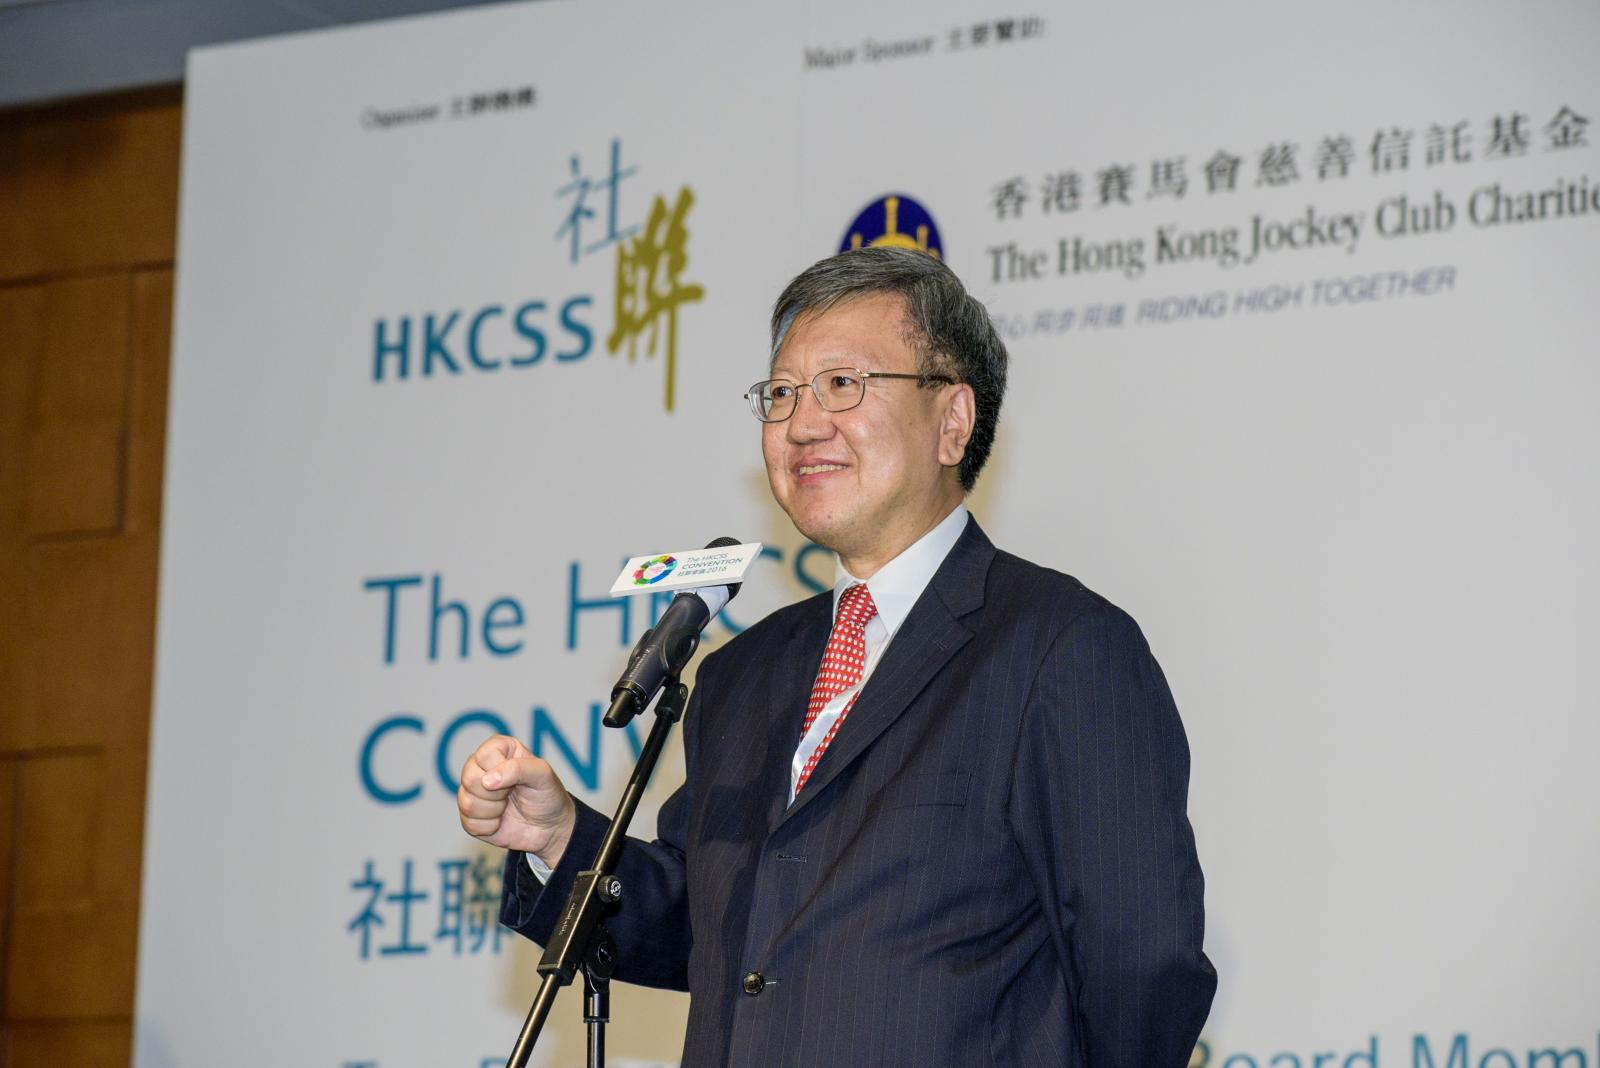 Mr Kennedy LIU, Vice-President of The Hong Kong Council of Social Service, and President of Steering Committee on NGOs Governance Platform Project, expects that the new Project can connect board members of different organizations, collecting wisdoms of individuals to stimulate discussions on ways to enhance governance of the social service sector.